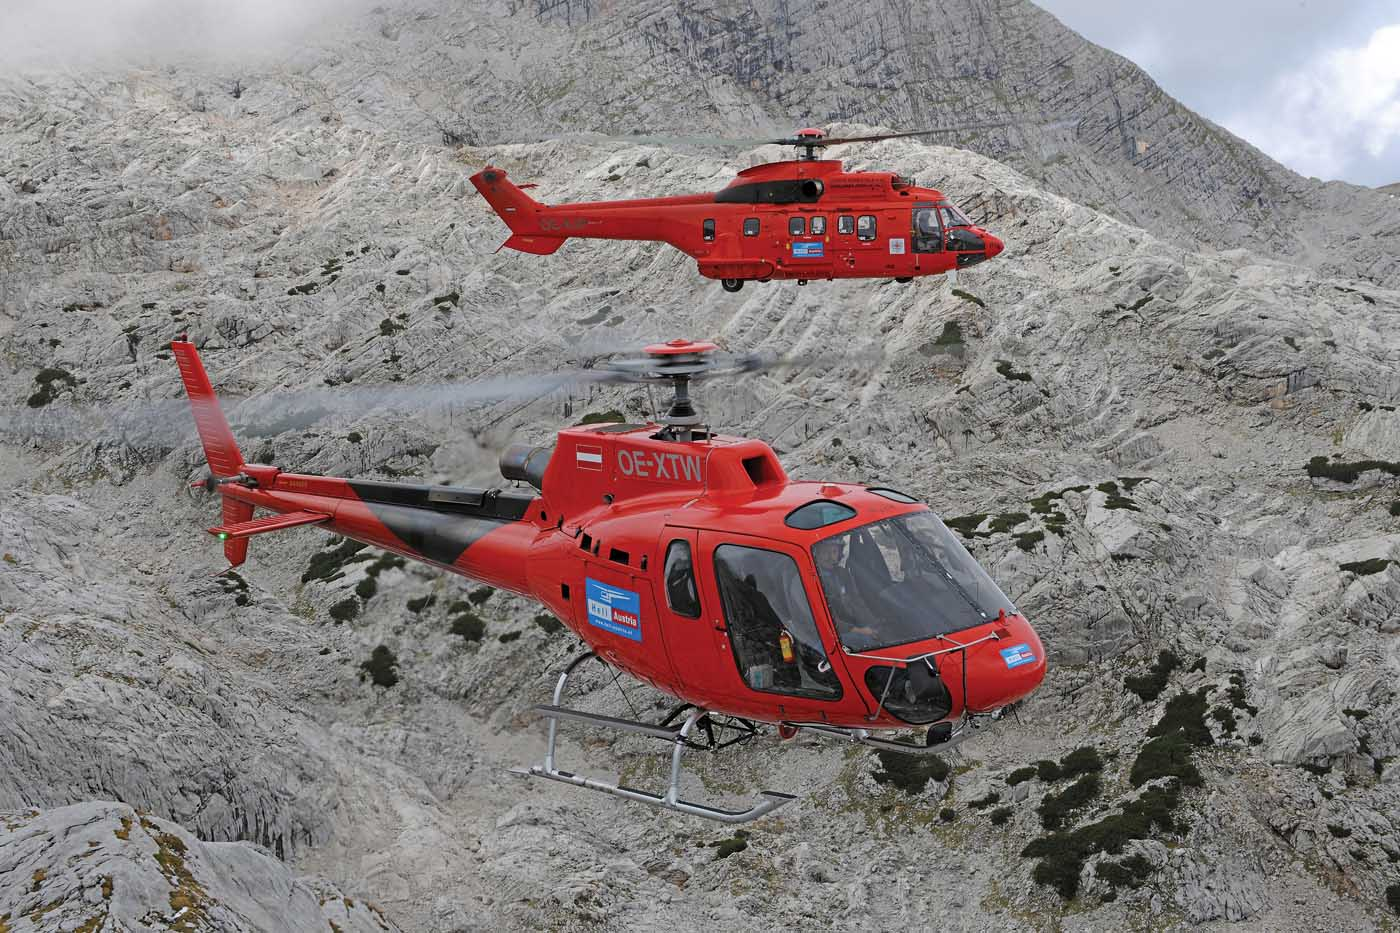 There are over two dozen helicopters in the Heli-Austria fleet, ranging in size from the AS350 AStar (foreground) to the AS332 Super Puma (background). Anthony Pecchi Photo